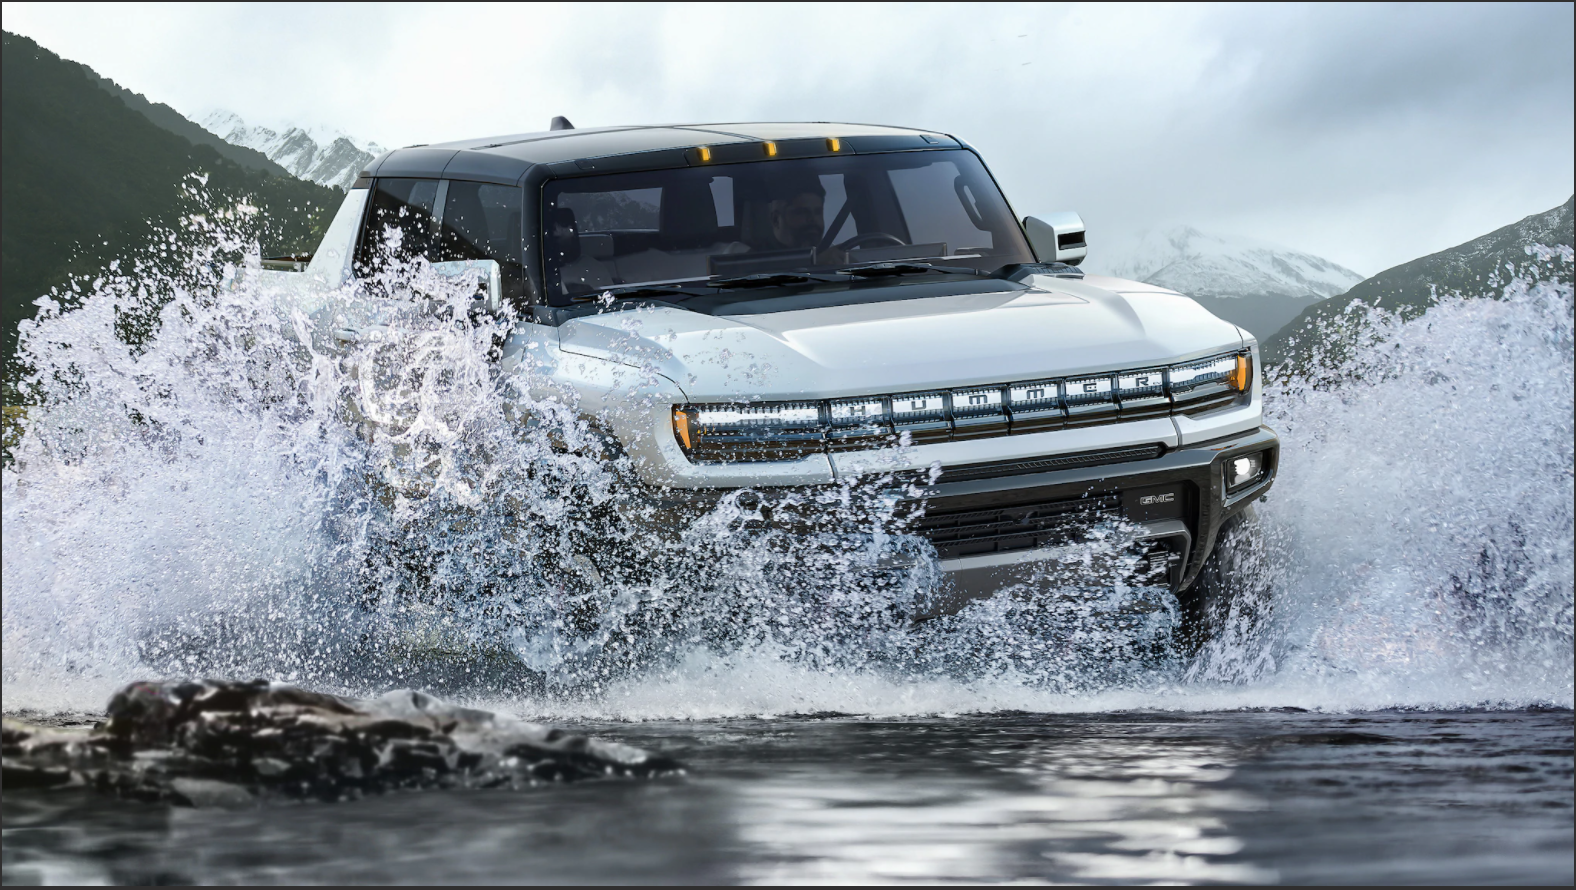 Picture showing the GMC Hummer drives through water